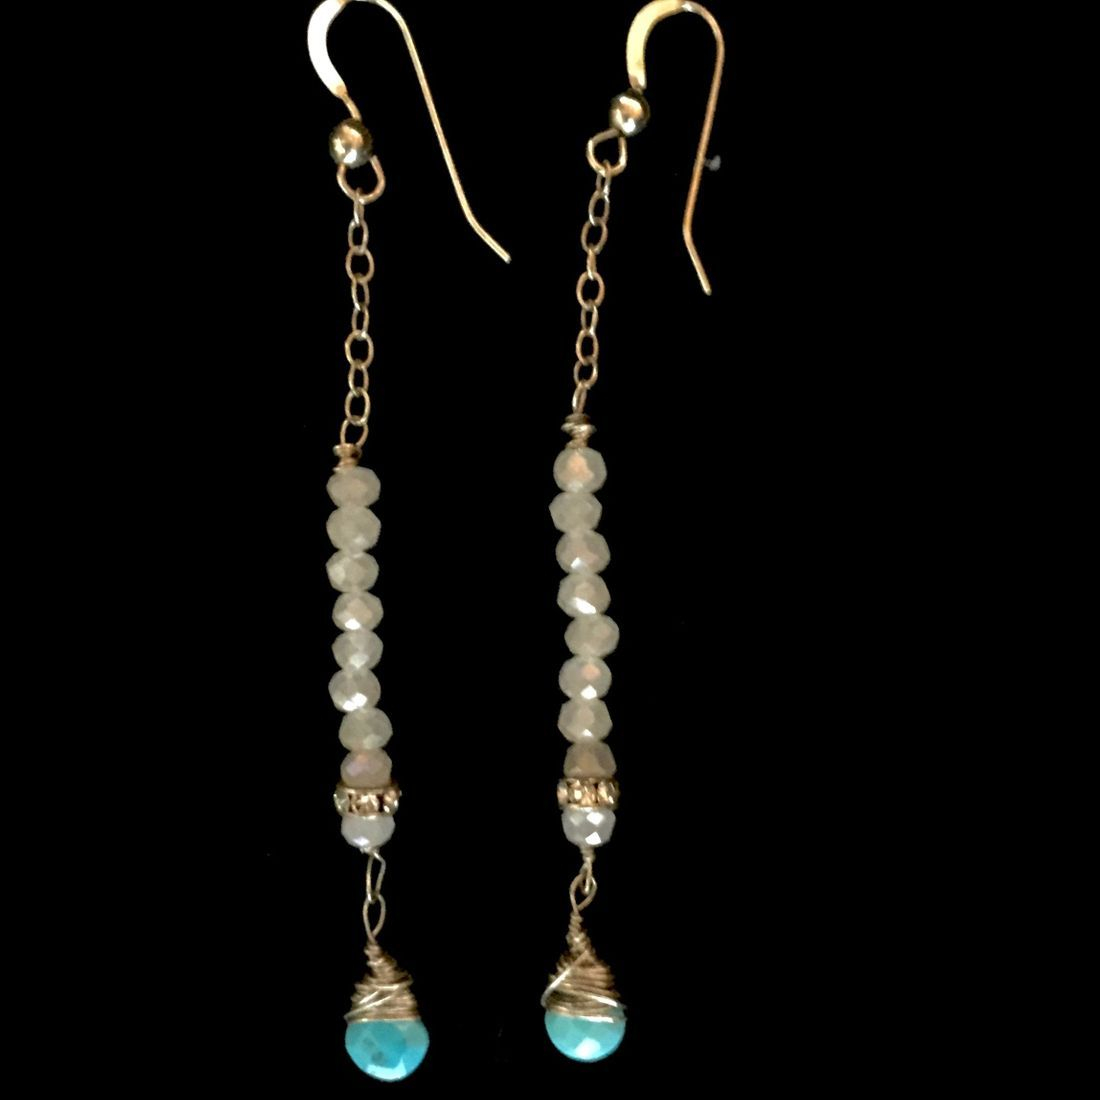 Moonstone and Turquoise Drop Earrings